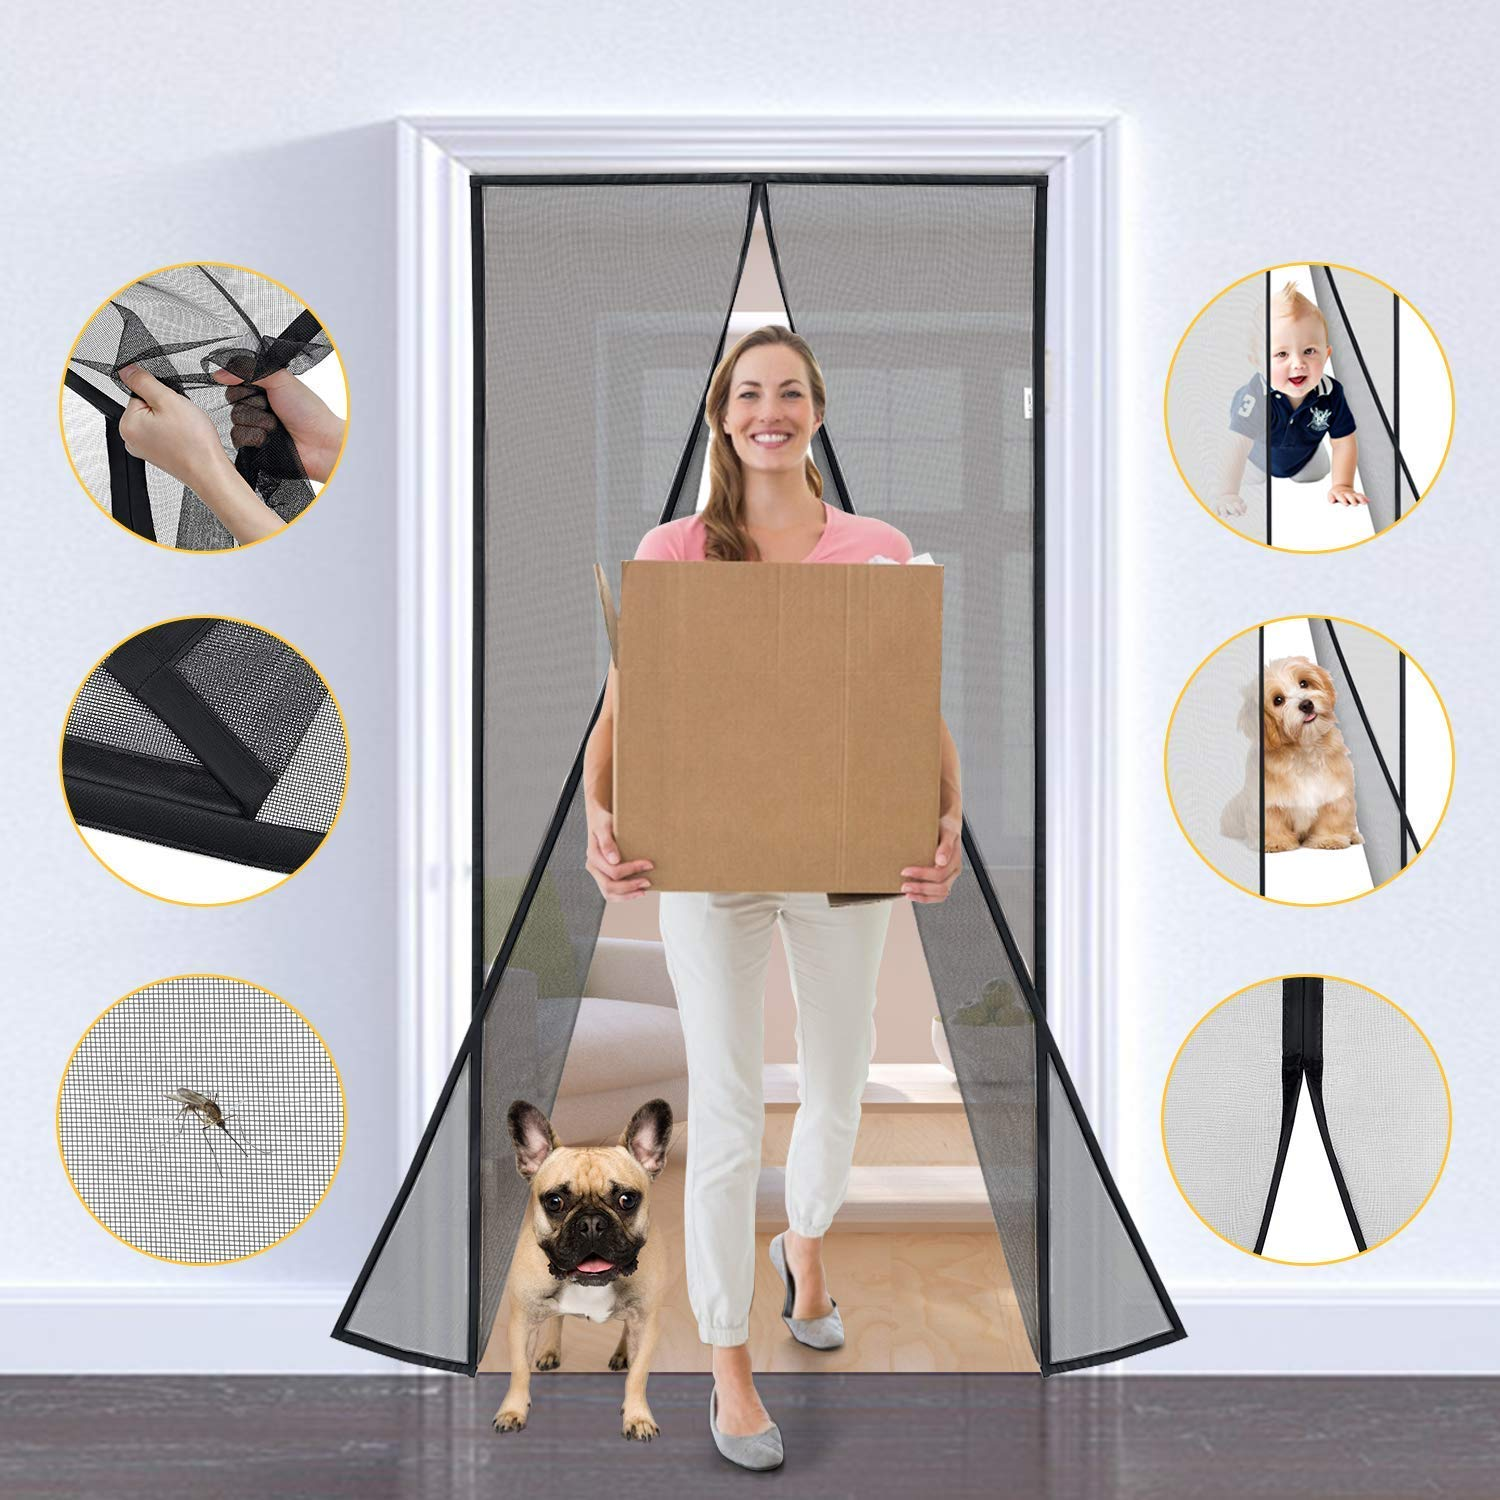 Magnetic Screen Door, perfect for pets and kids! 50% off, $8.99 on Amazon